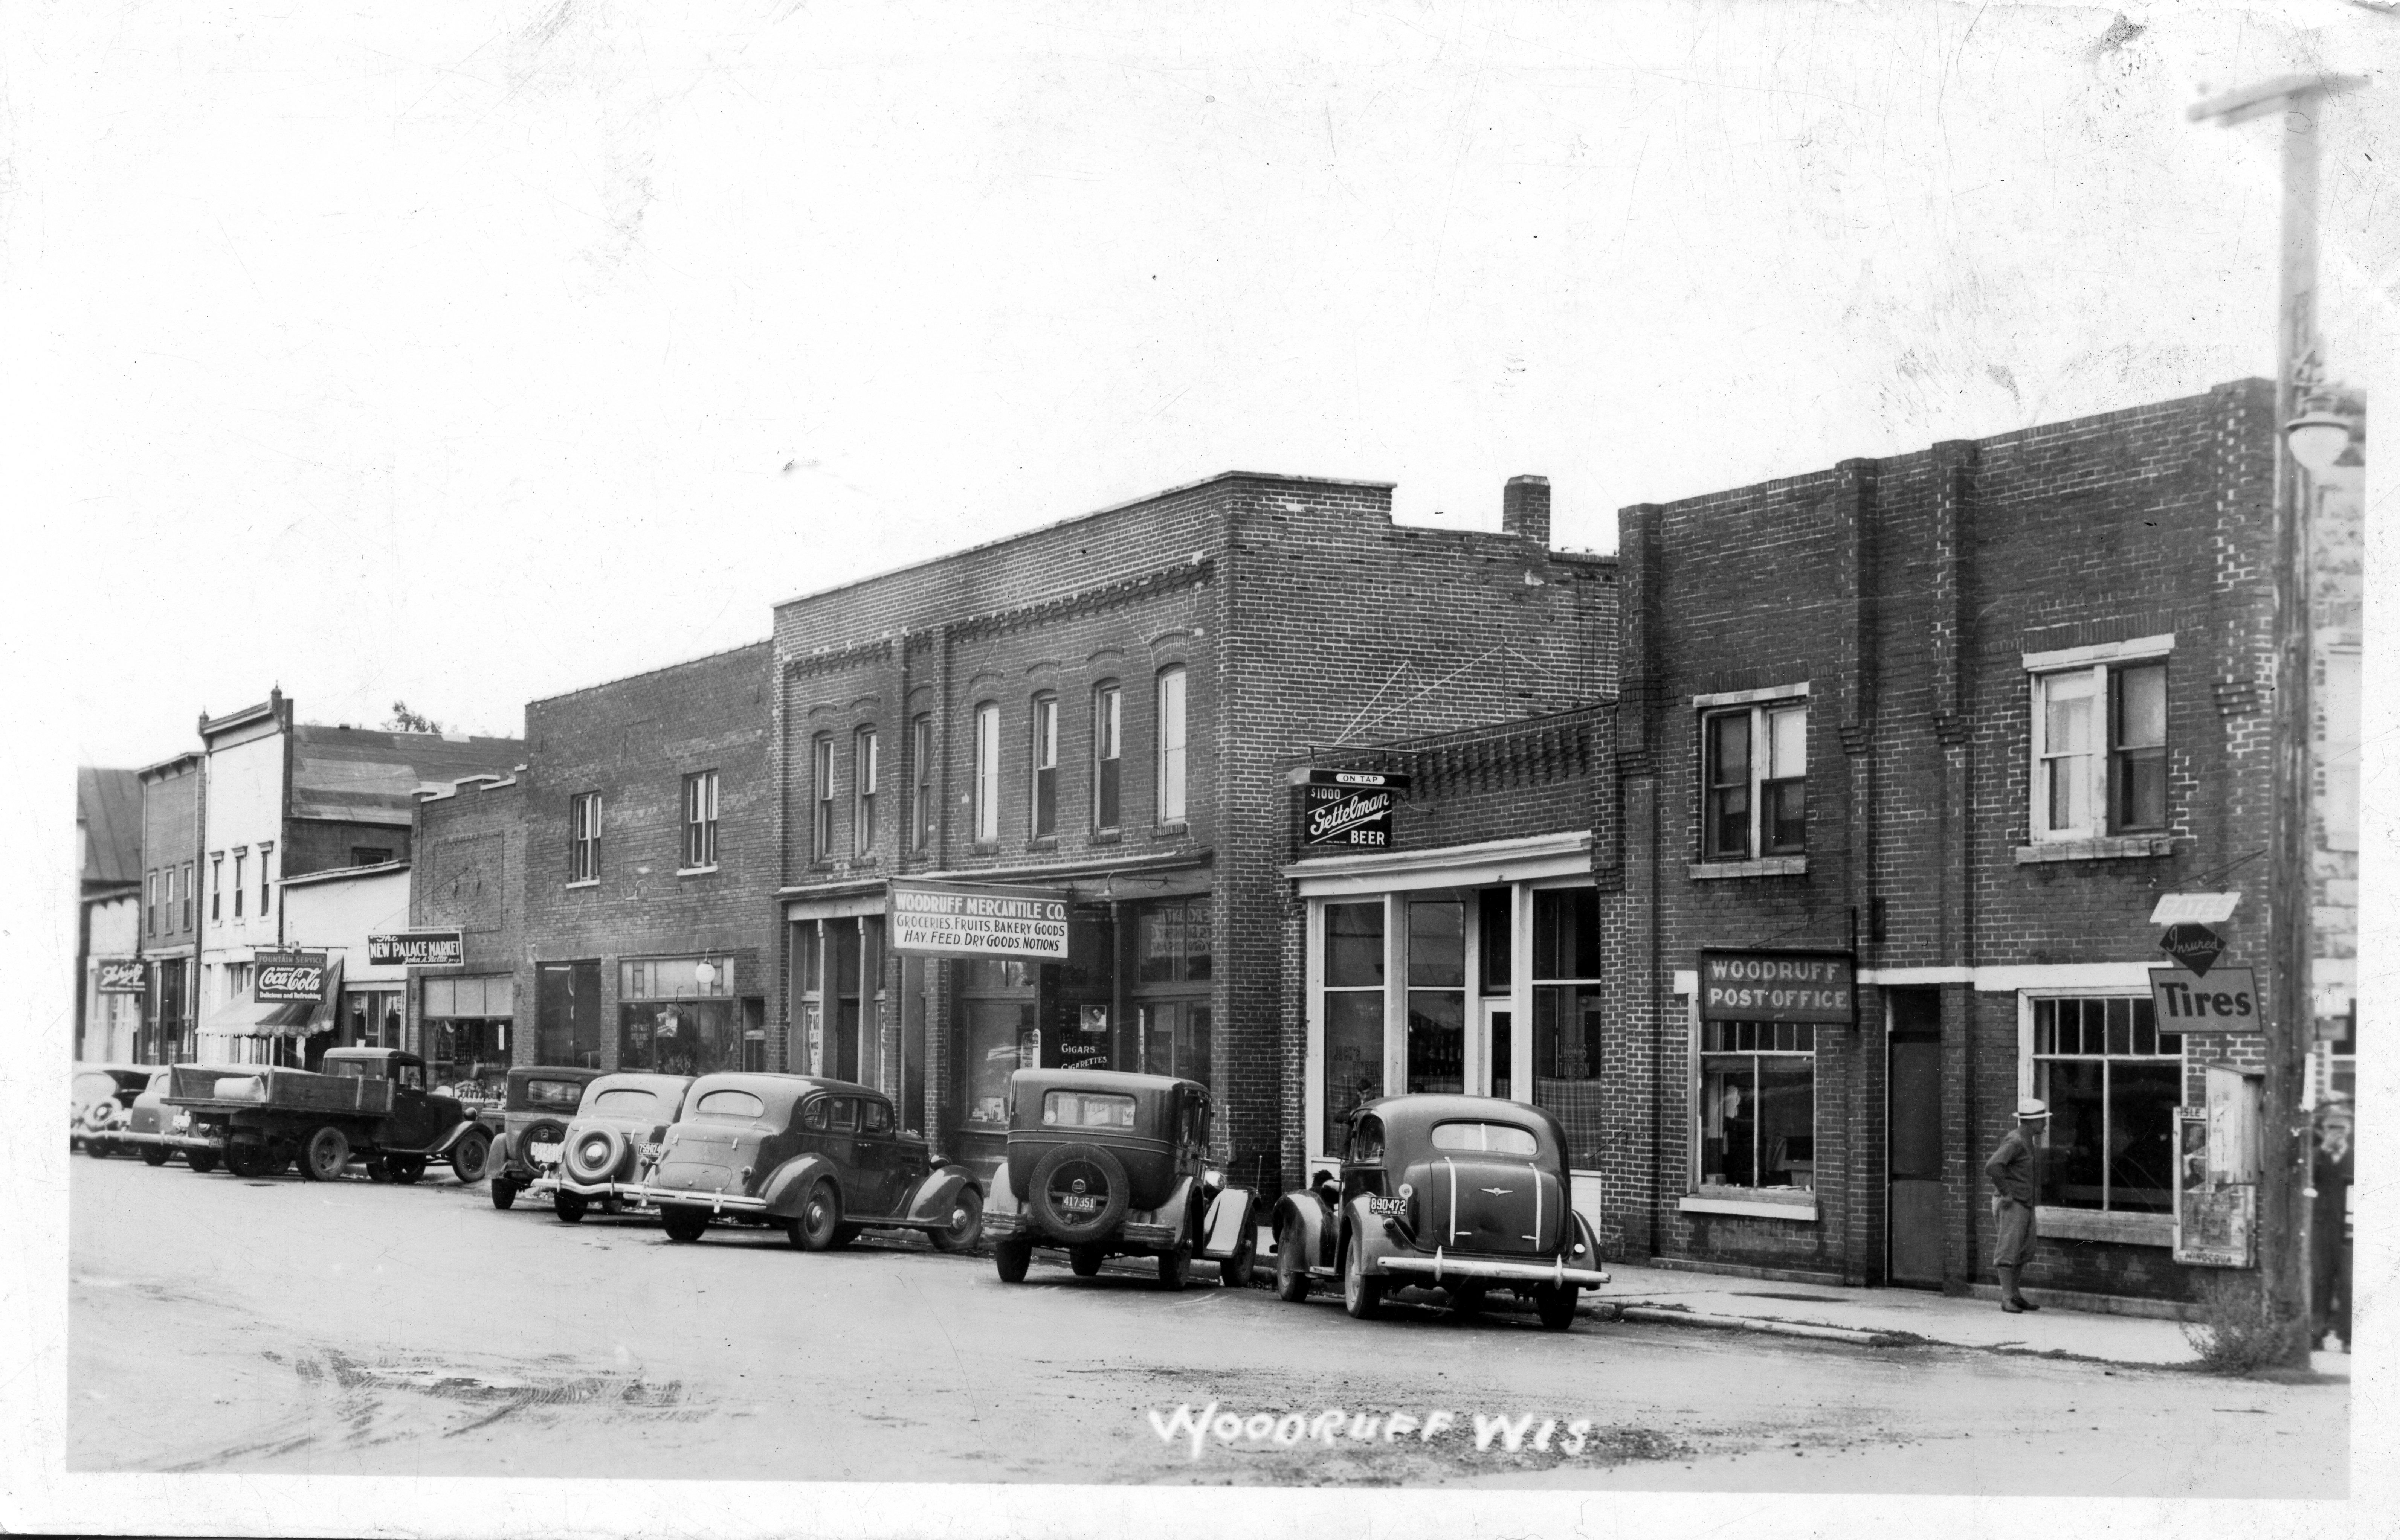 Main Street, Woodruff (Hwy. 47) in the 1940s. Courtesy of Minocqua Museum